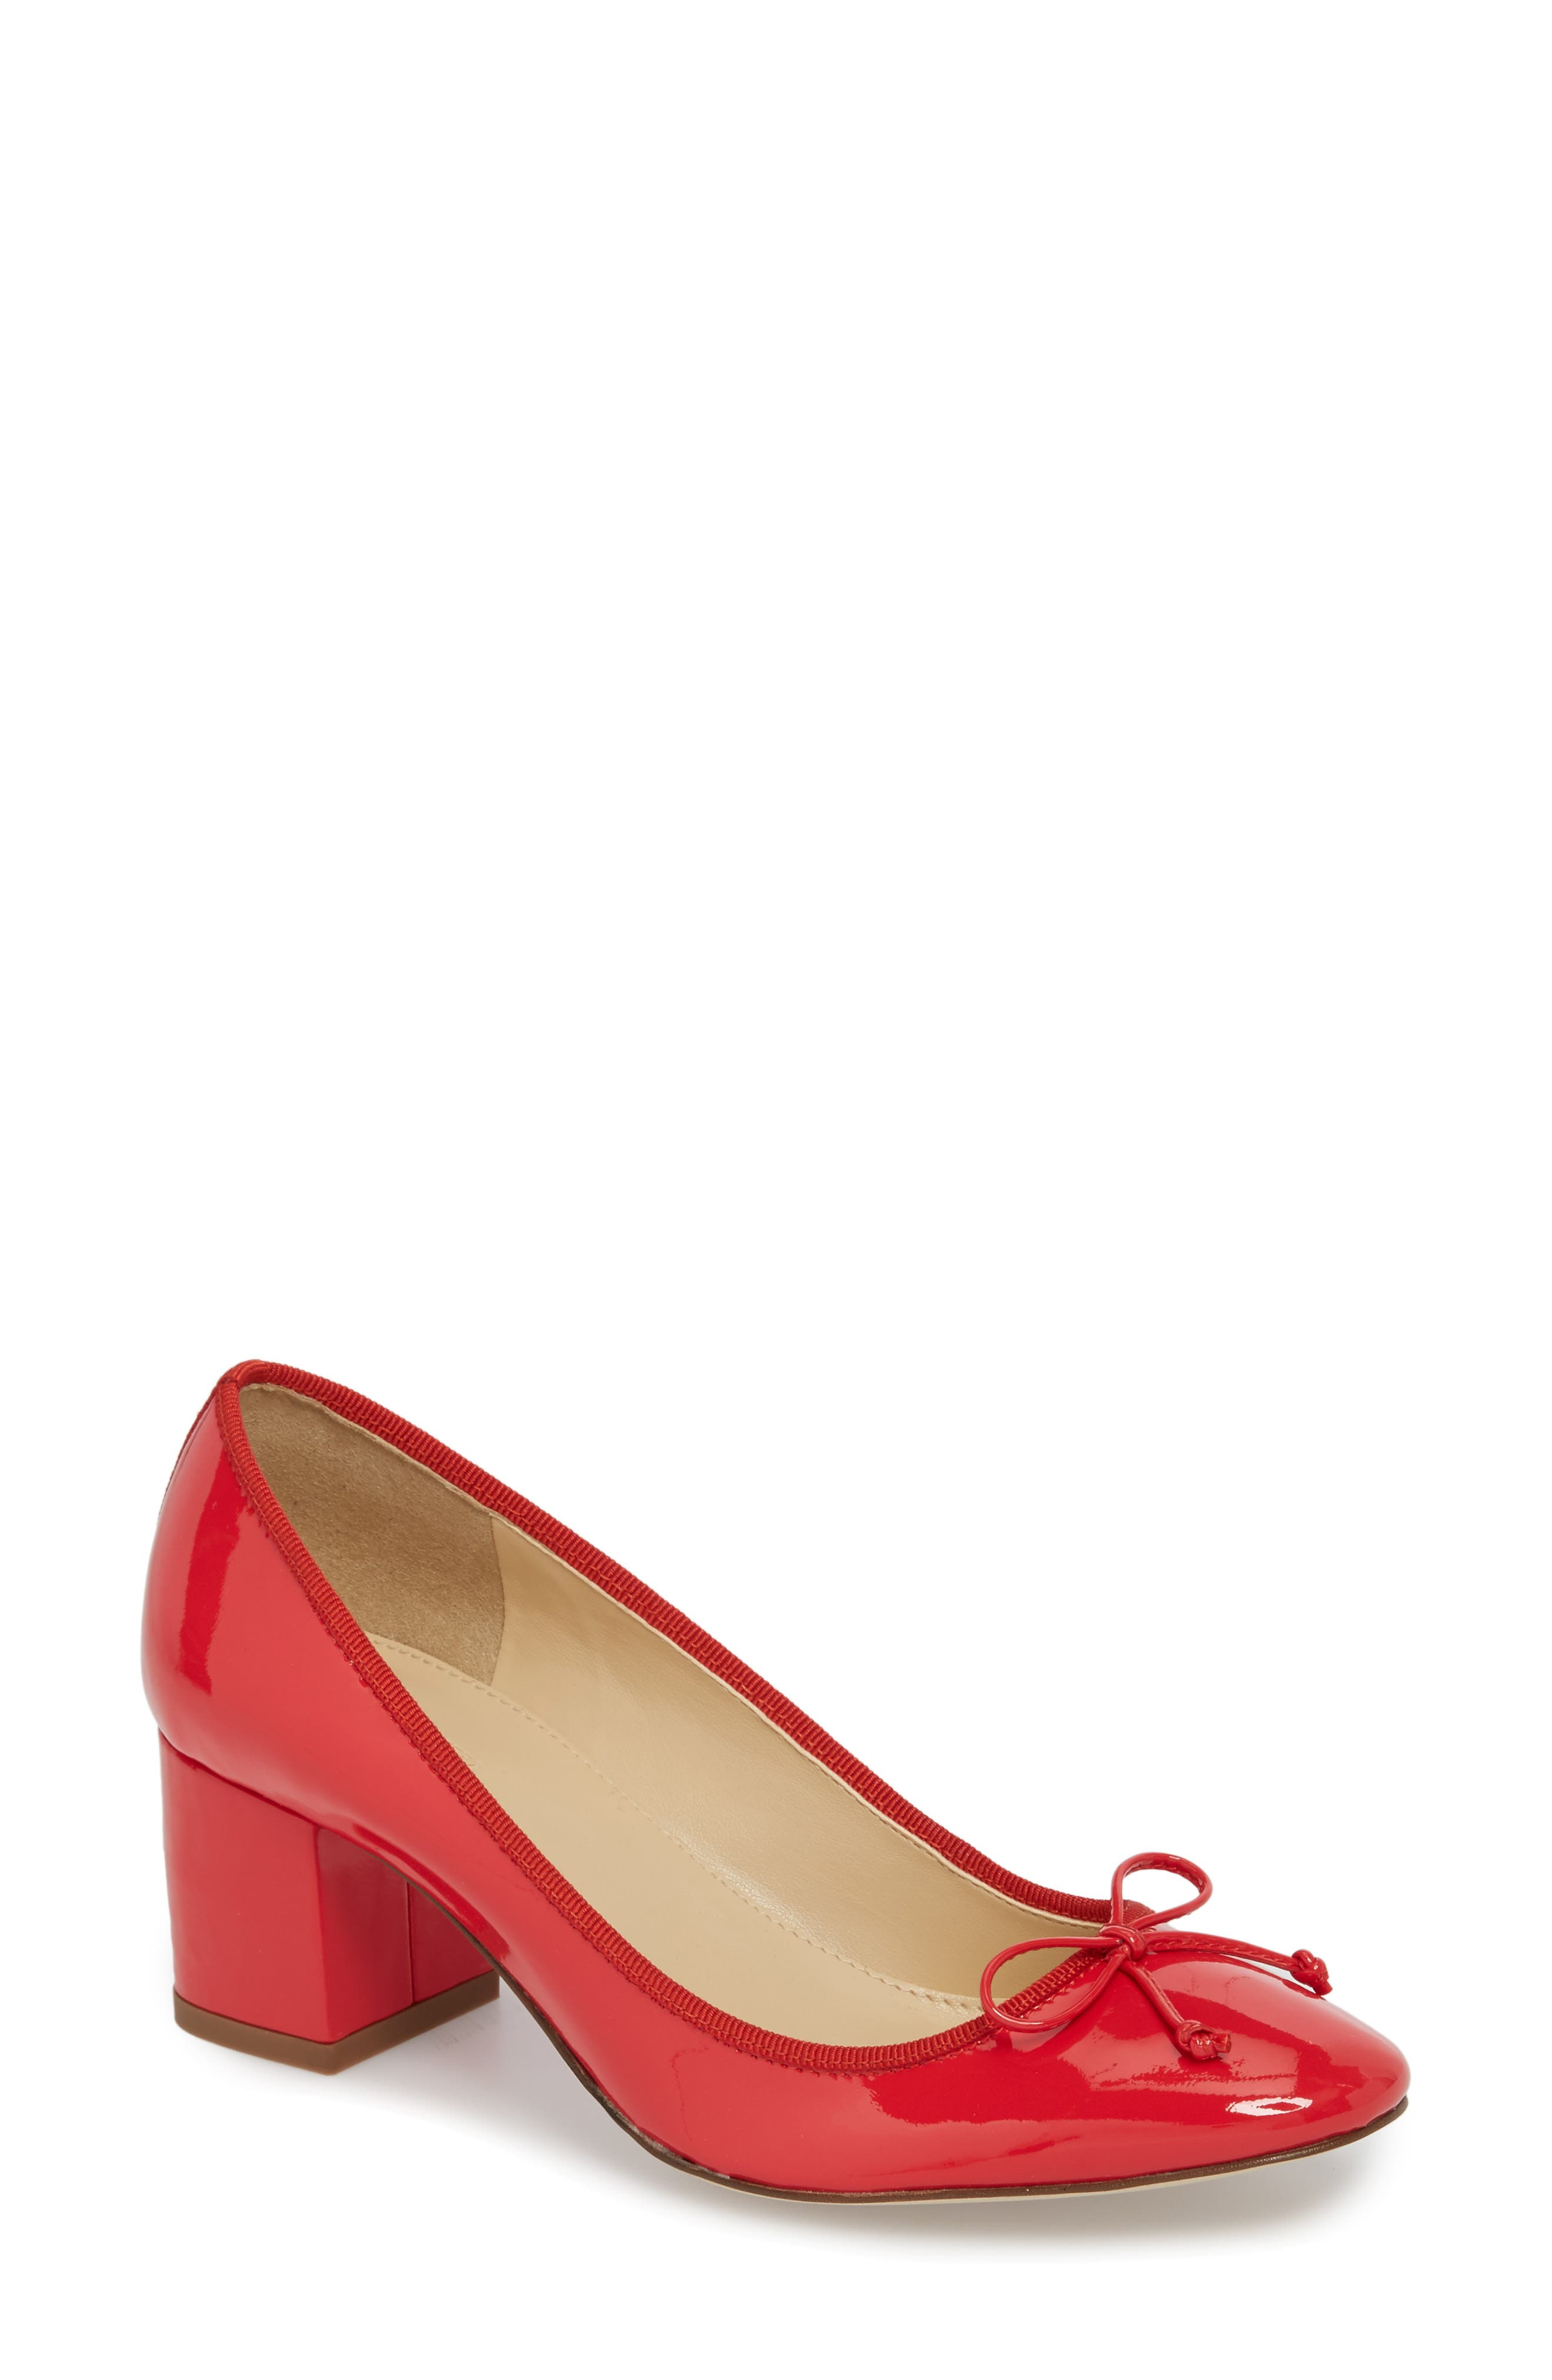 Leonard Pump,                             Main thumbnail 1, color,                             Red Leather